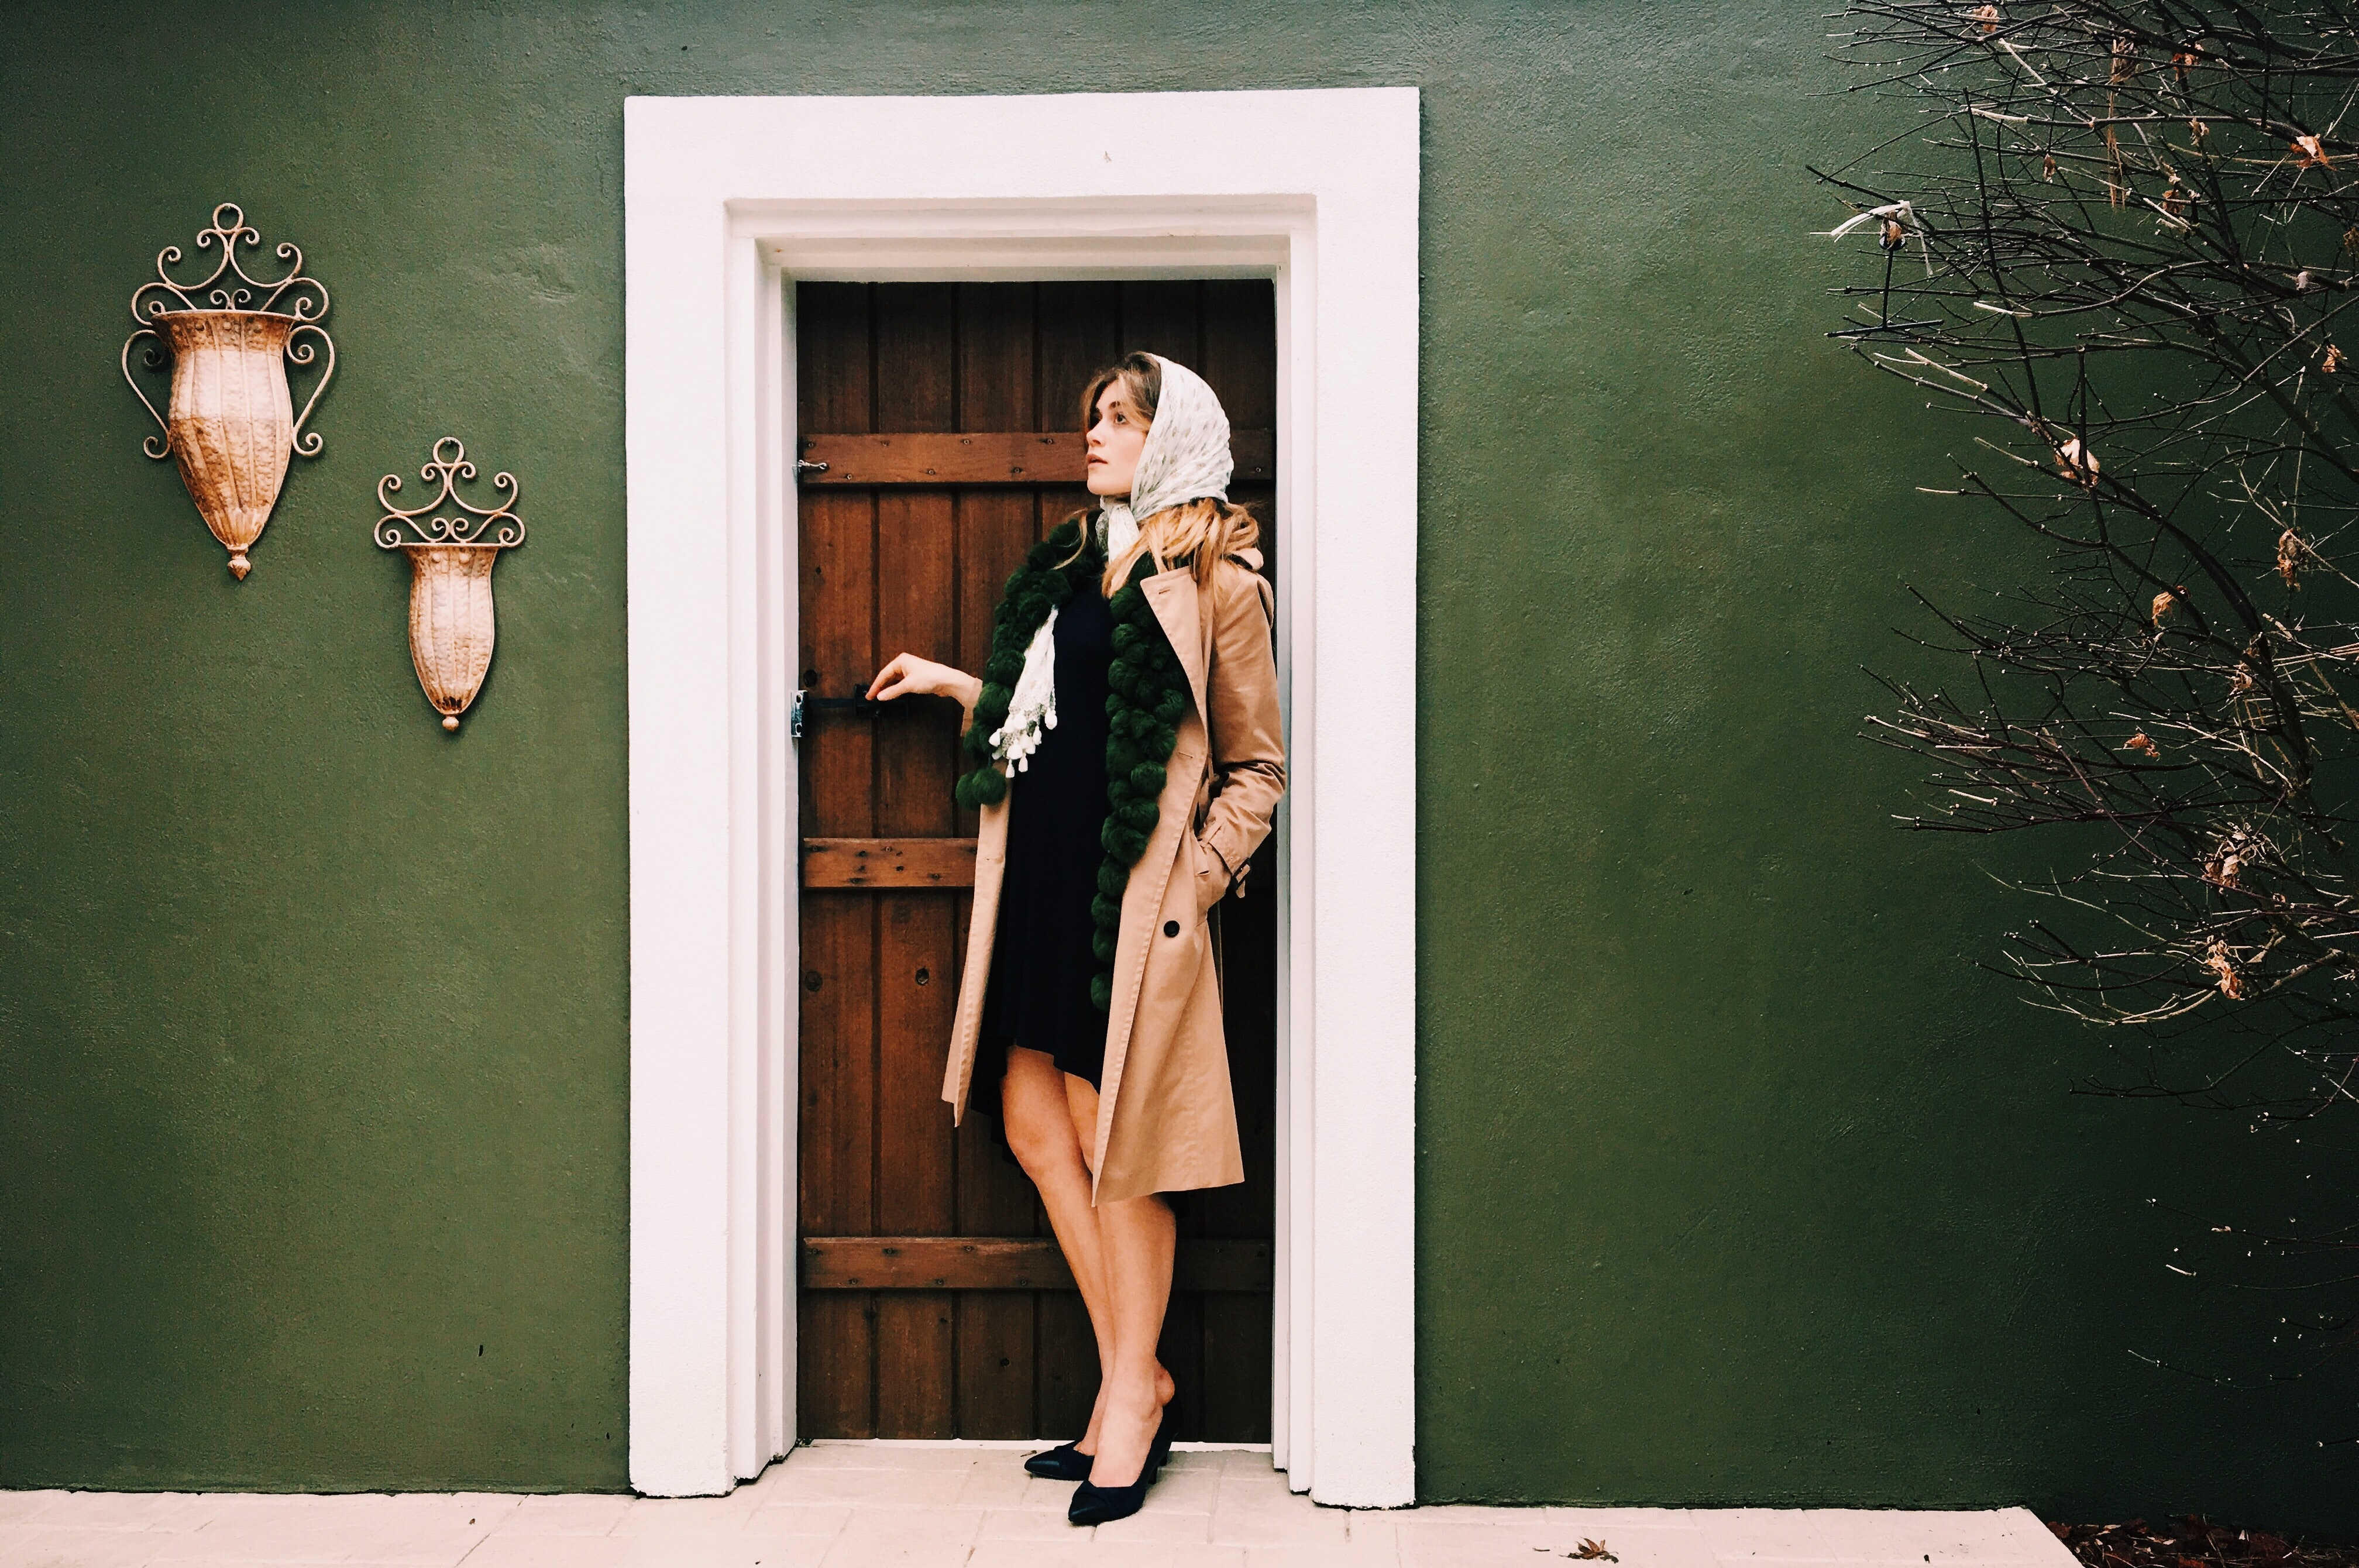 woman standing beside door during daytime